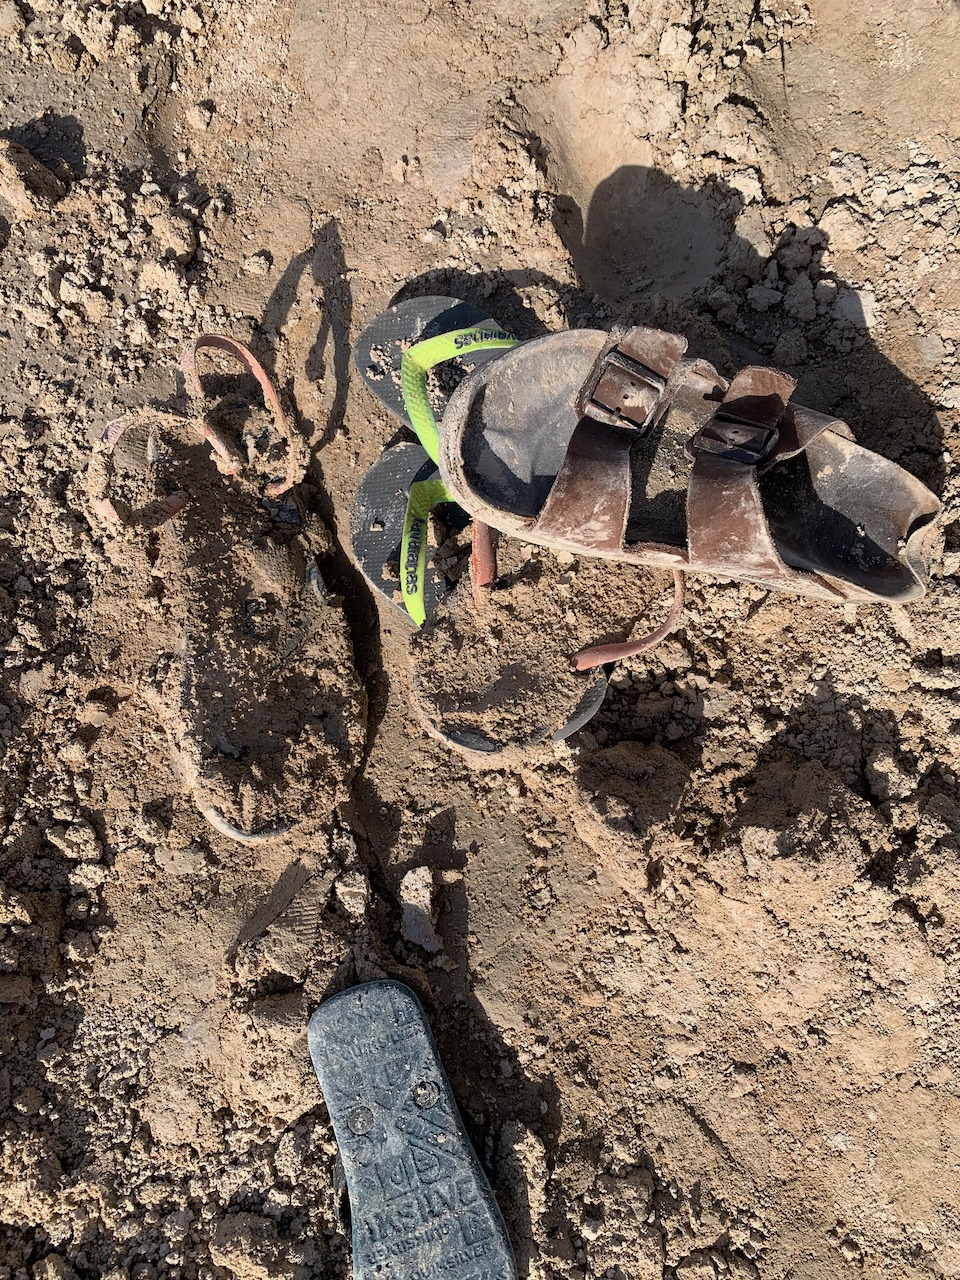 Sandals in the mud